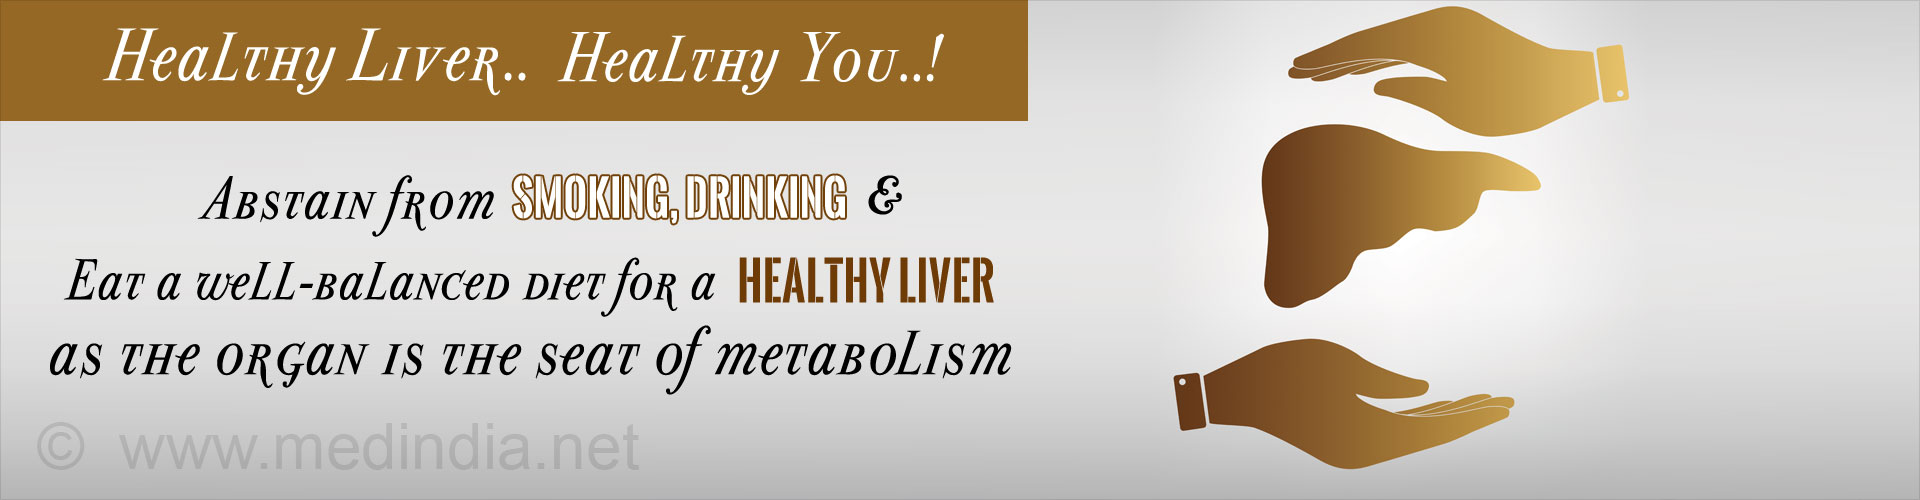 Abstain From Smoking, Drinking and Eat a Well Balanced Diet for a Healthy Liver